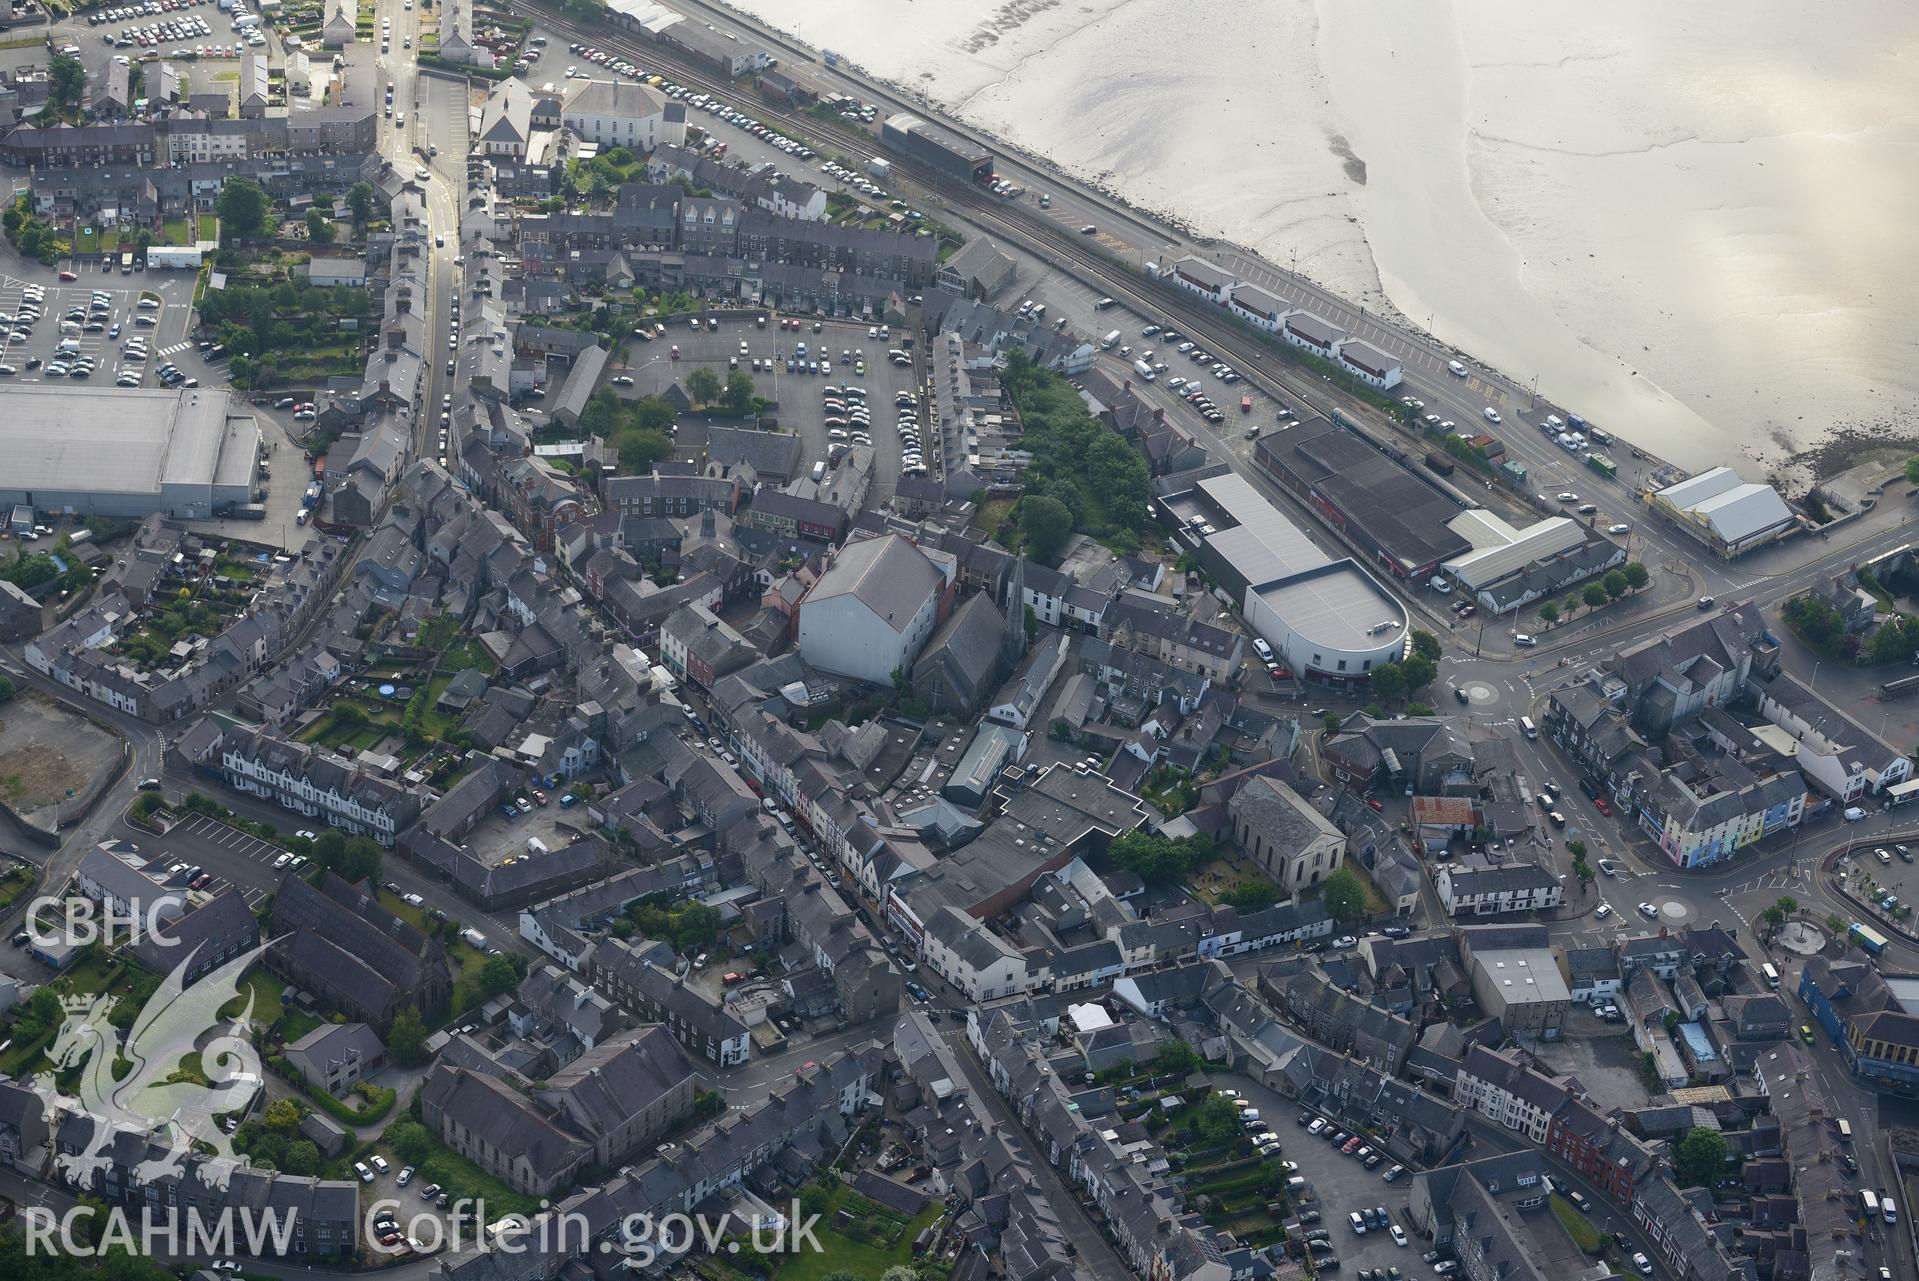 Pen-Lan and Salem chapels; St Peter's Church; old Town Hall; new Town Hall (cinema) & railway station, Pwllheli. Oblique aerial photograph taken during the Royal Commission's programme of archaeological aerial reconnaissance by Toby Driver on 23/06/2015.